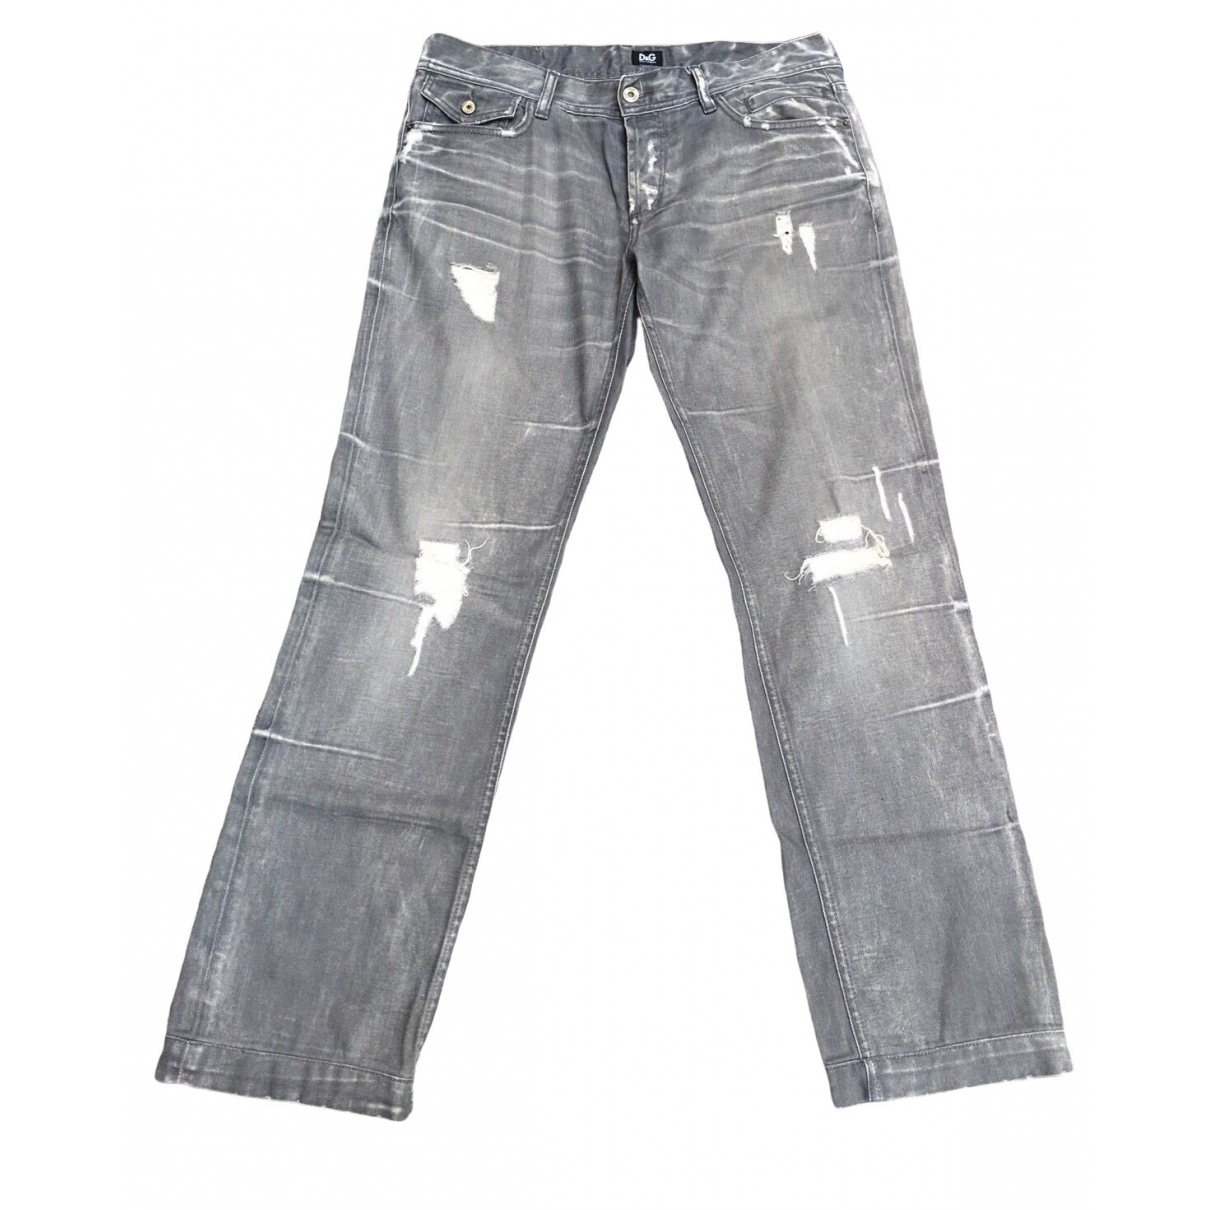 D&g \N Grey Cotton Jeans for Men 34 US